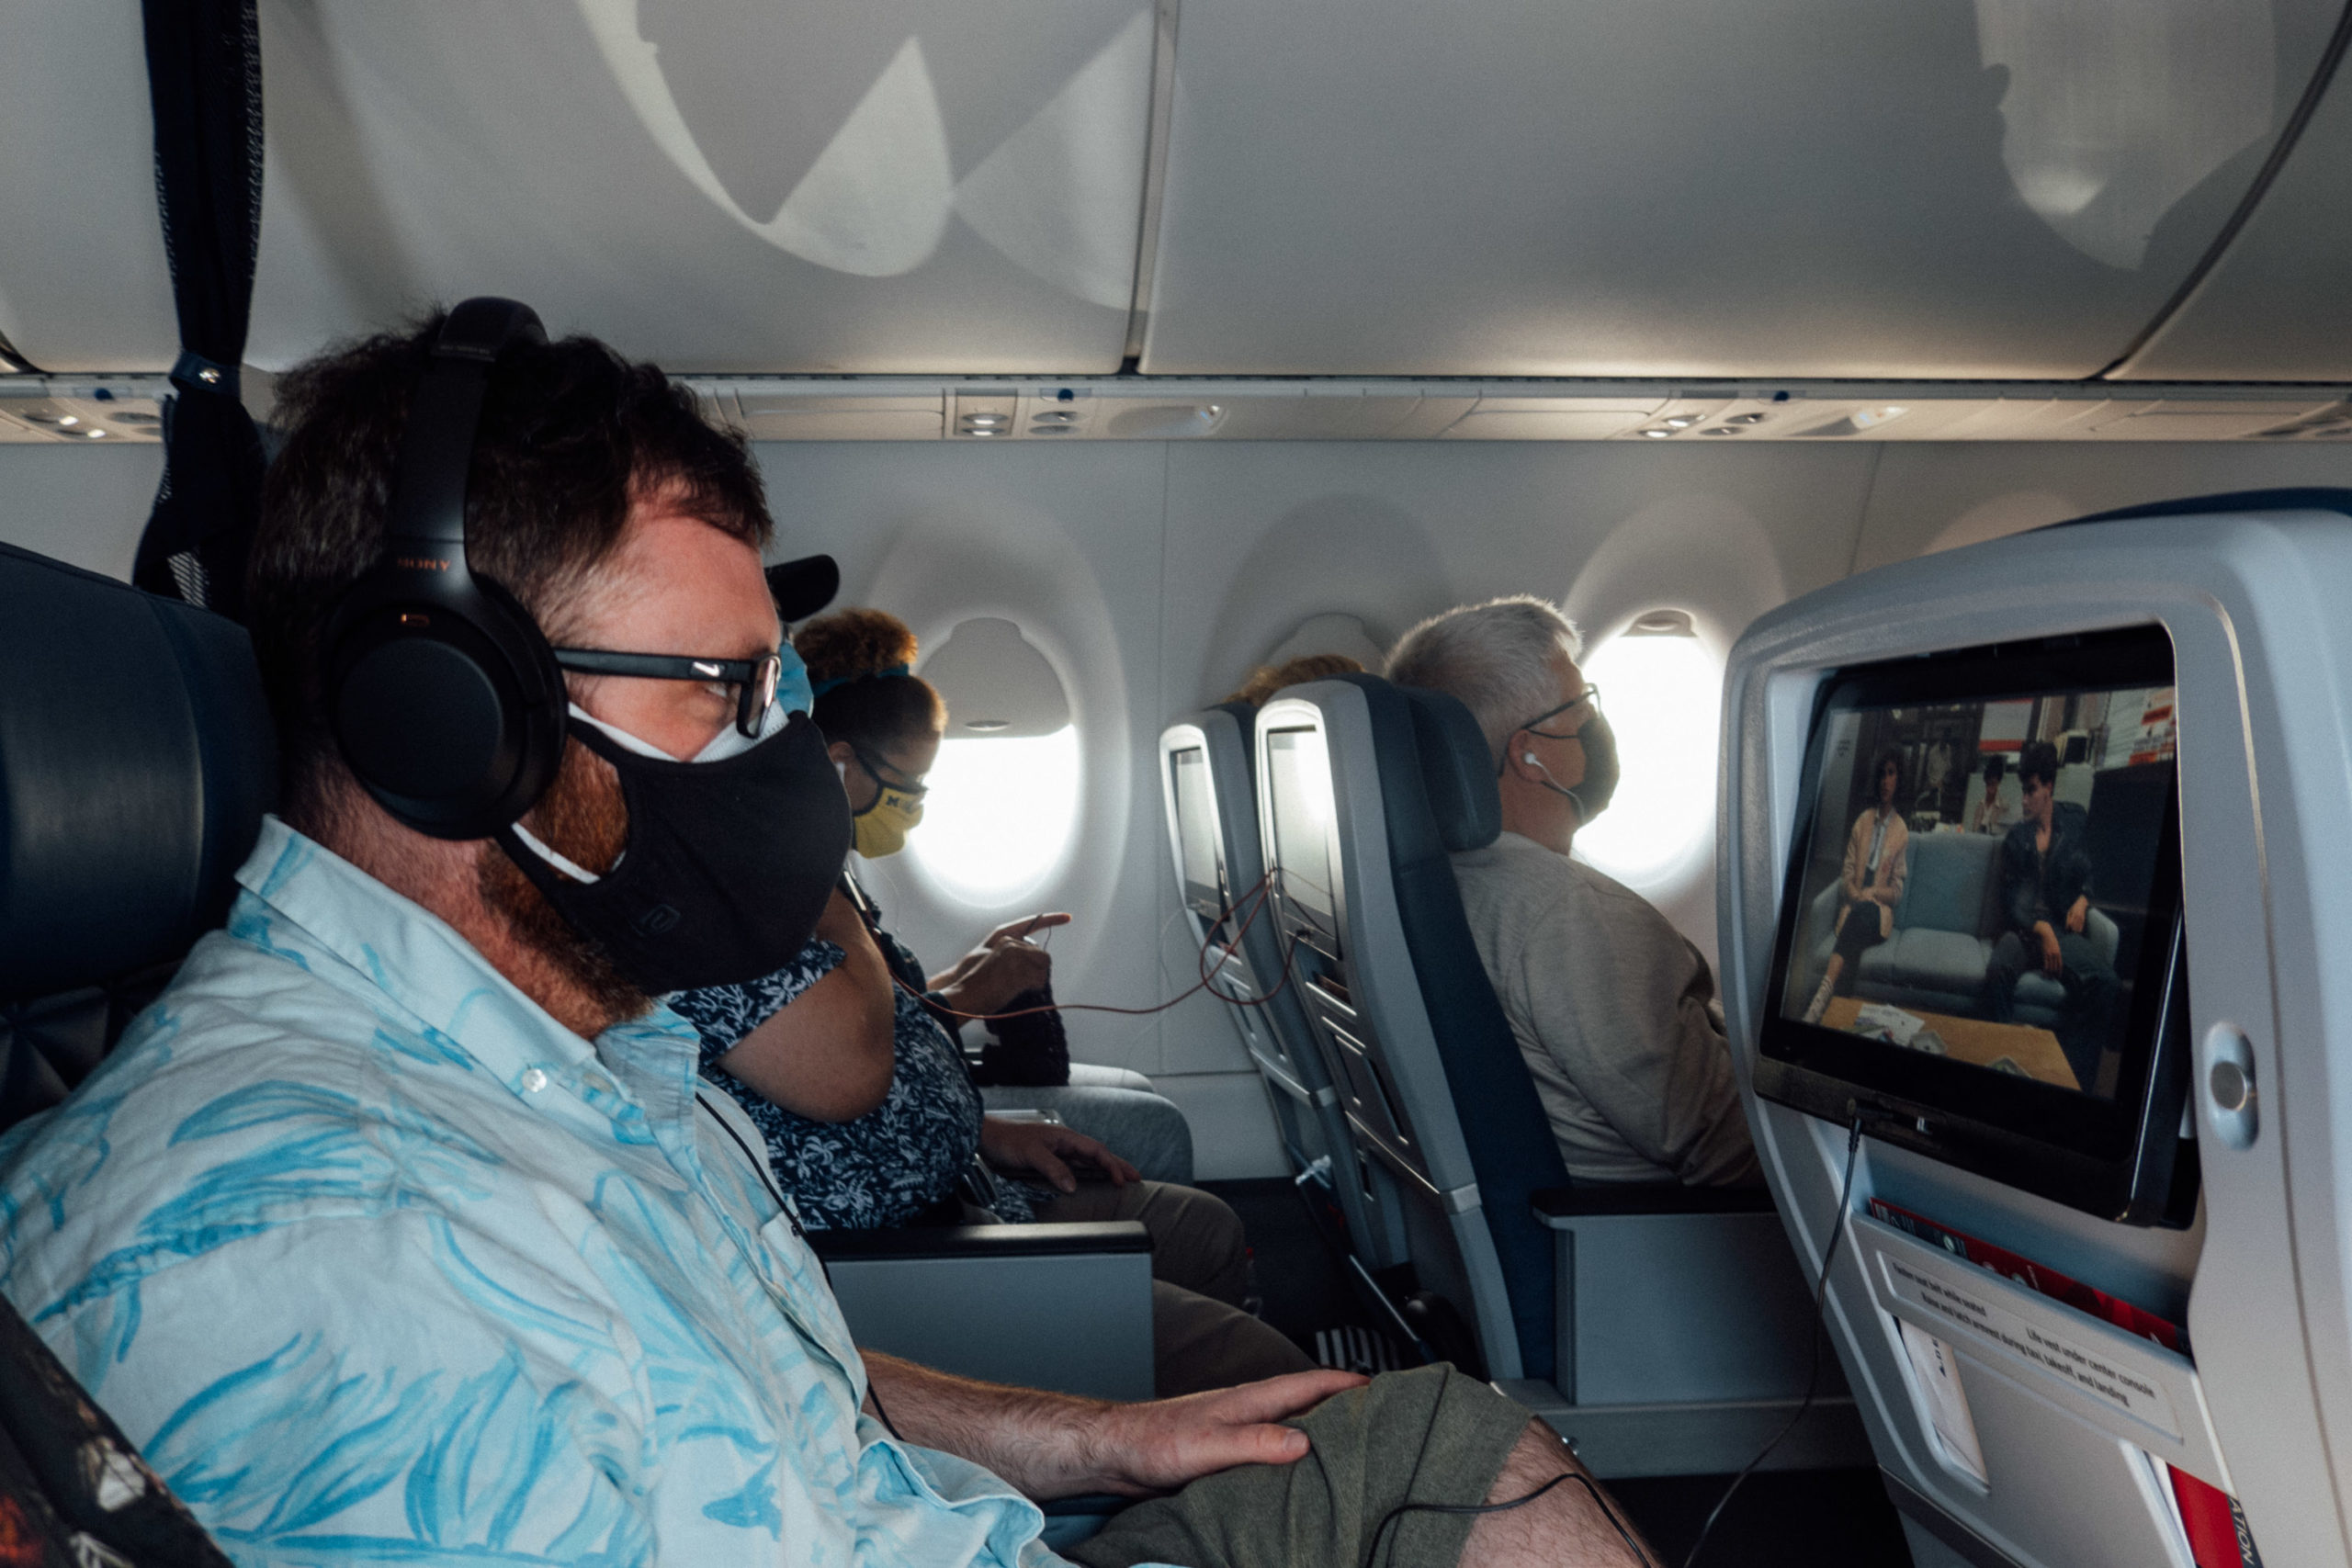 A bearded man with double facemasks on an airplane watches Ferris Bueller's Day Off on a seatback video screen